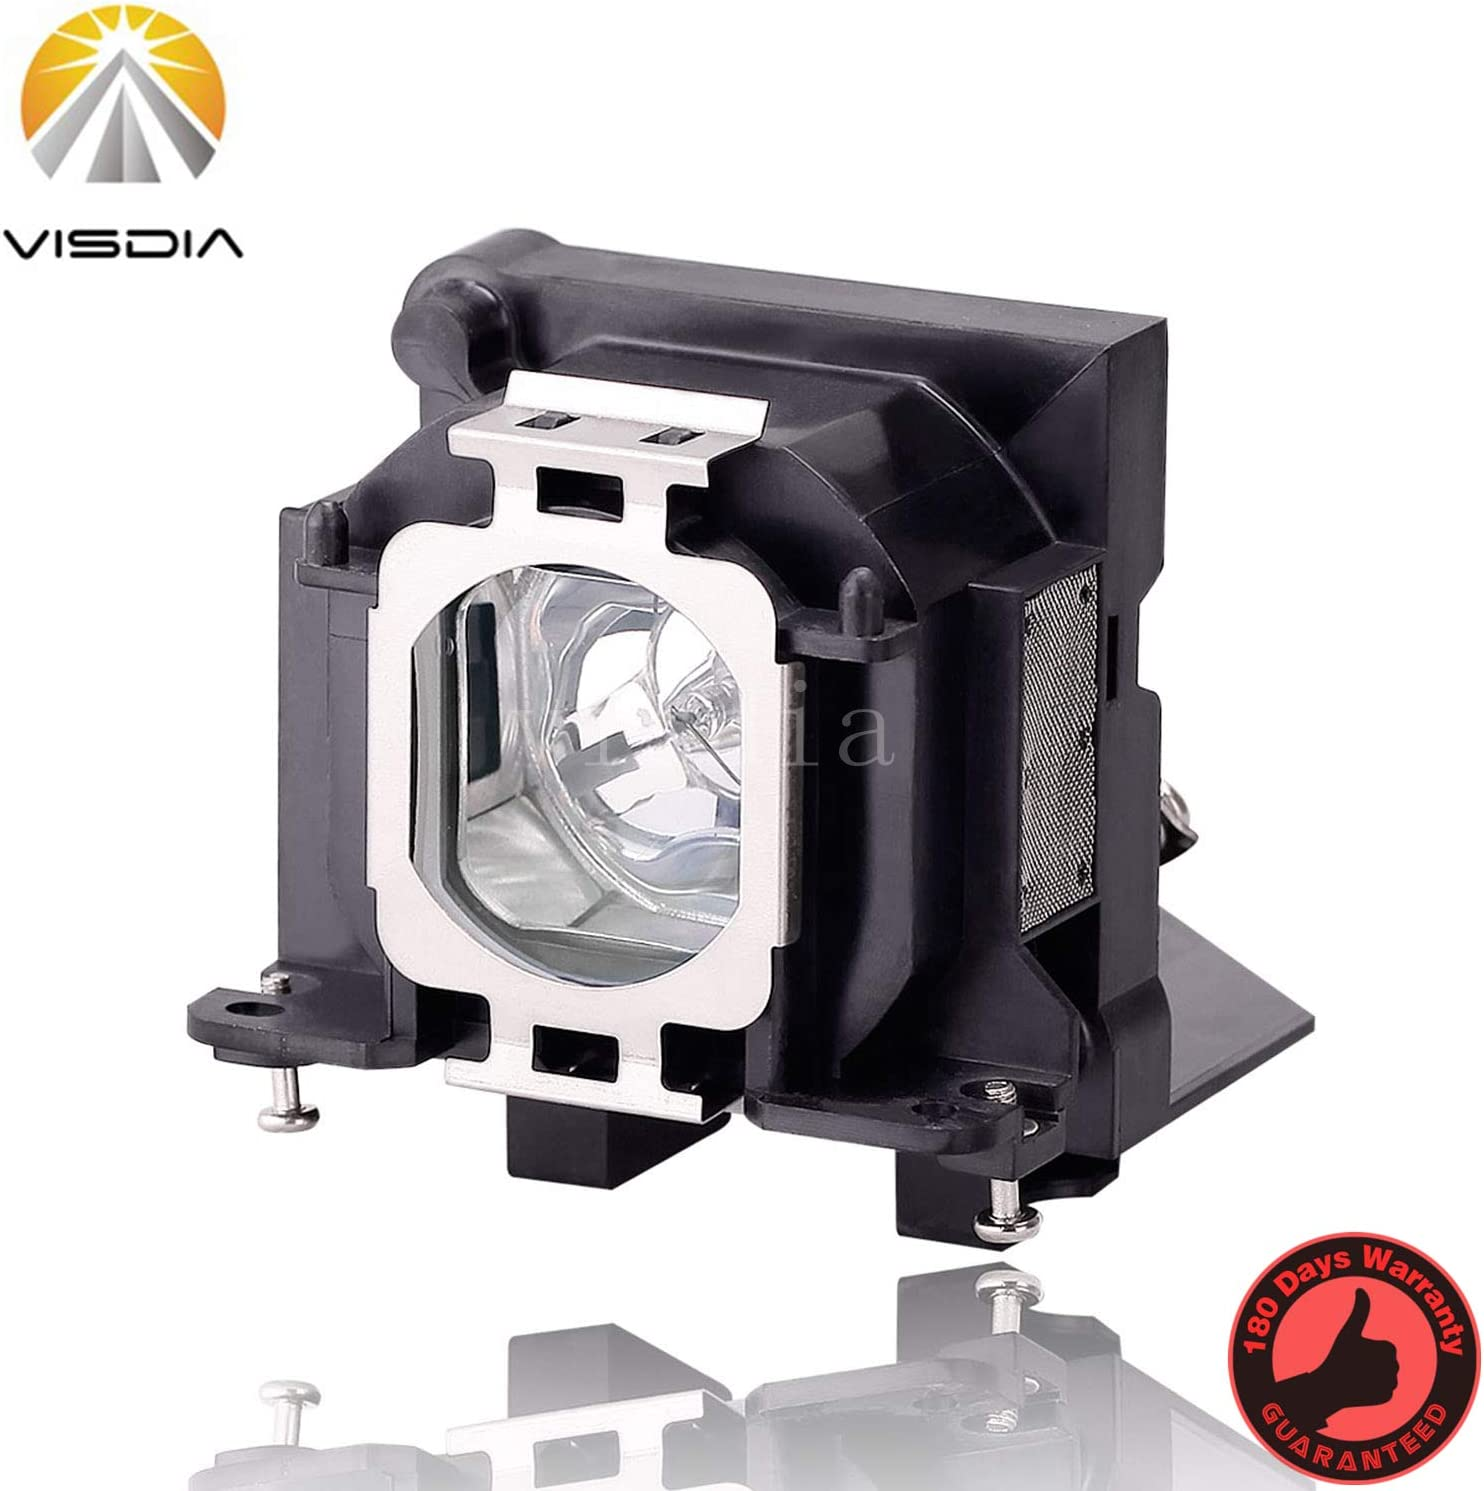 LMP-H160 Replacement Projector Lamp with Housing for Sony AW10 AW10S AW15 AW15KT AW15S VPL-AW10 VPL-AW10S VPL-AW15 VPL-AW15KT VPL-AW15S Projectors by Visdia